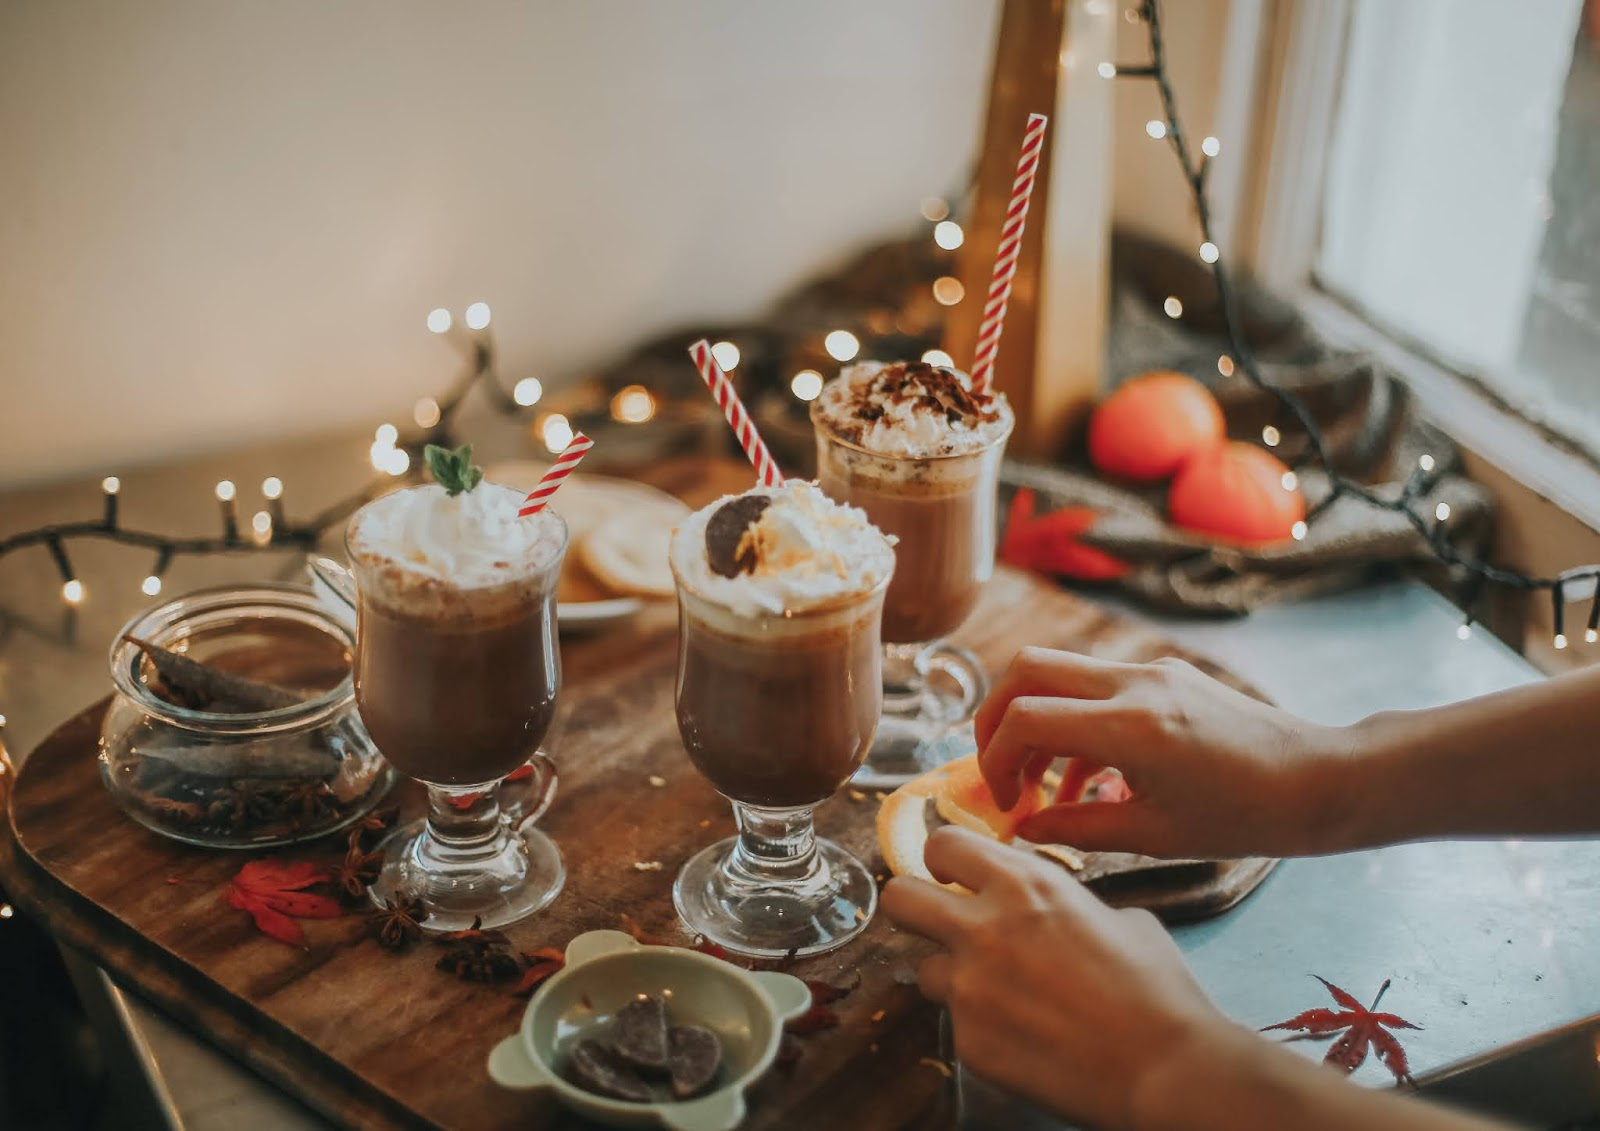 Rêveuse Recipe: A Quick and Easy Hot Chocolate 3 Ways